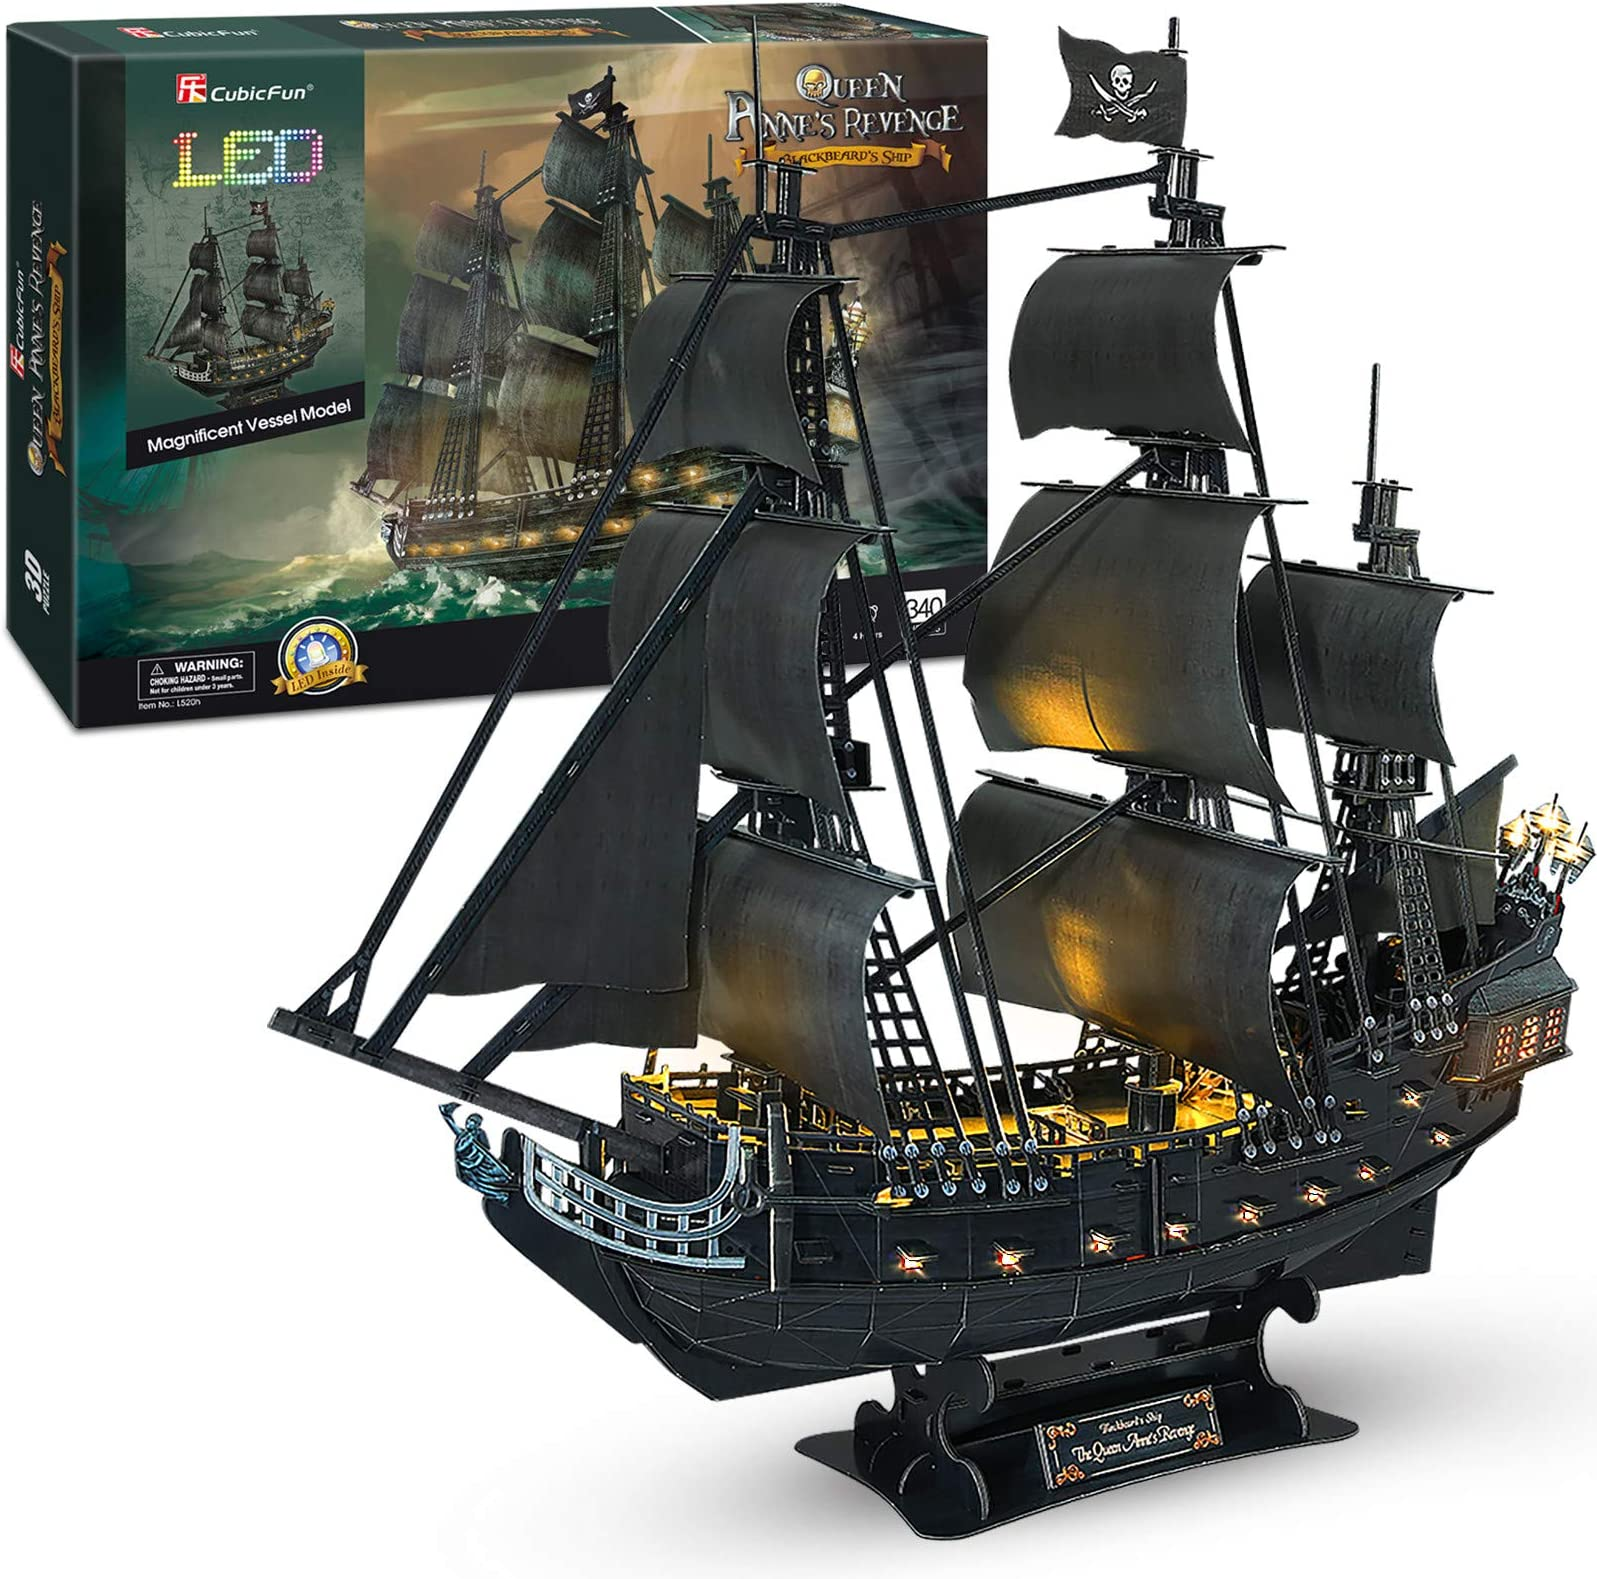 """CubicFun 3D Puzzles 26.6"""" Pirate Ship with 15 LED Bulbs for Adults Sailboat Model Building Kits Hobby Toy, Cool Room Decor Gift for Men Queen Anne's Revenge, Difficult Family Puzzle"""